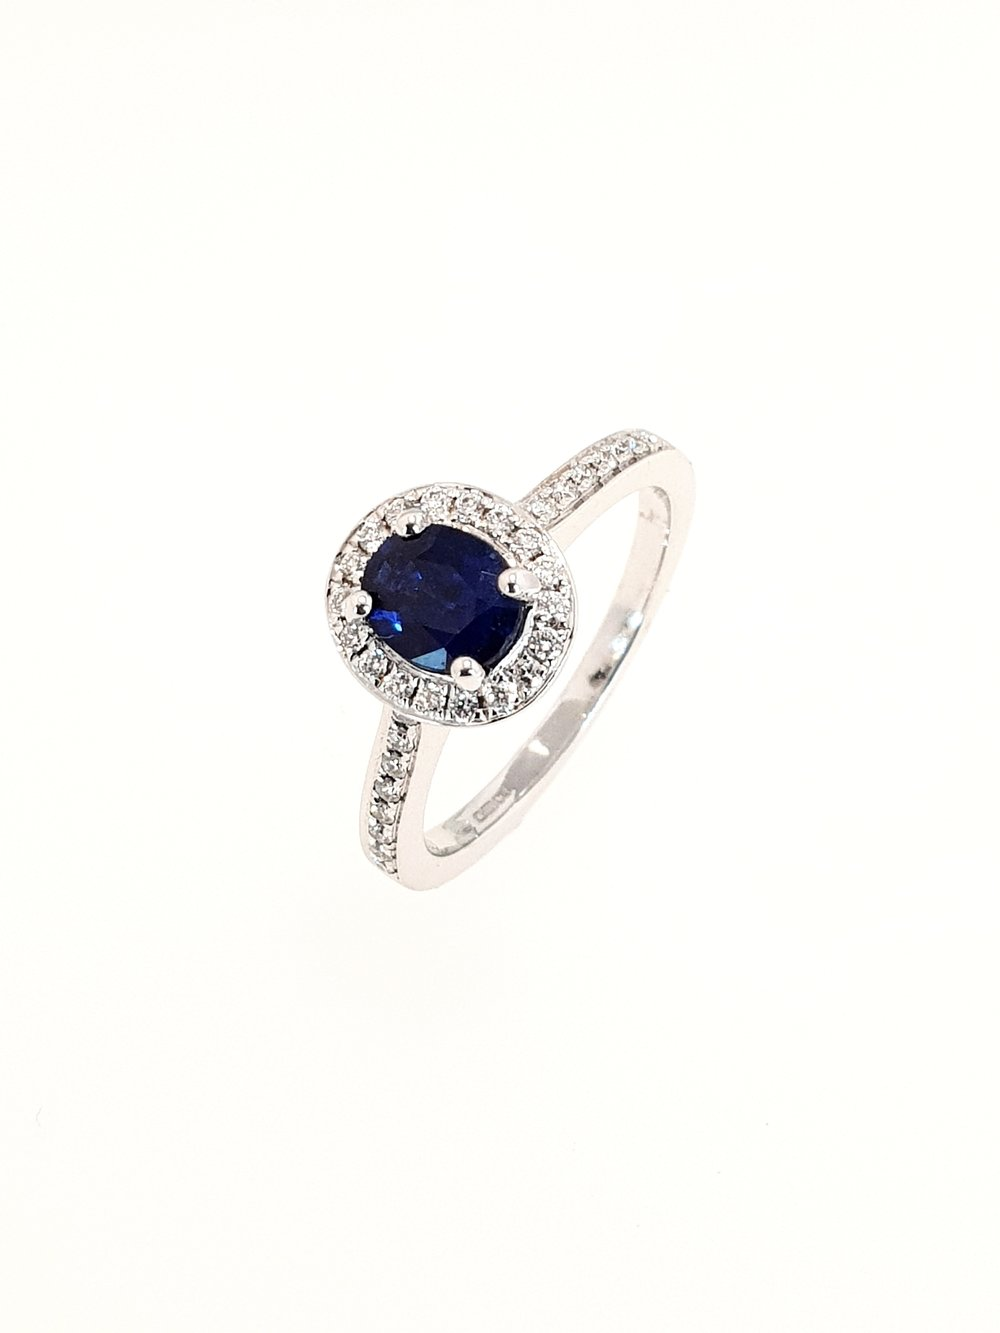 18ct White Gold Sapphire & Diamond Ring  Diamond: .19ct, G, Si1  Stock Code: N8945  £1900